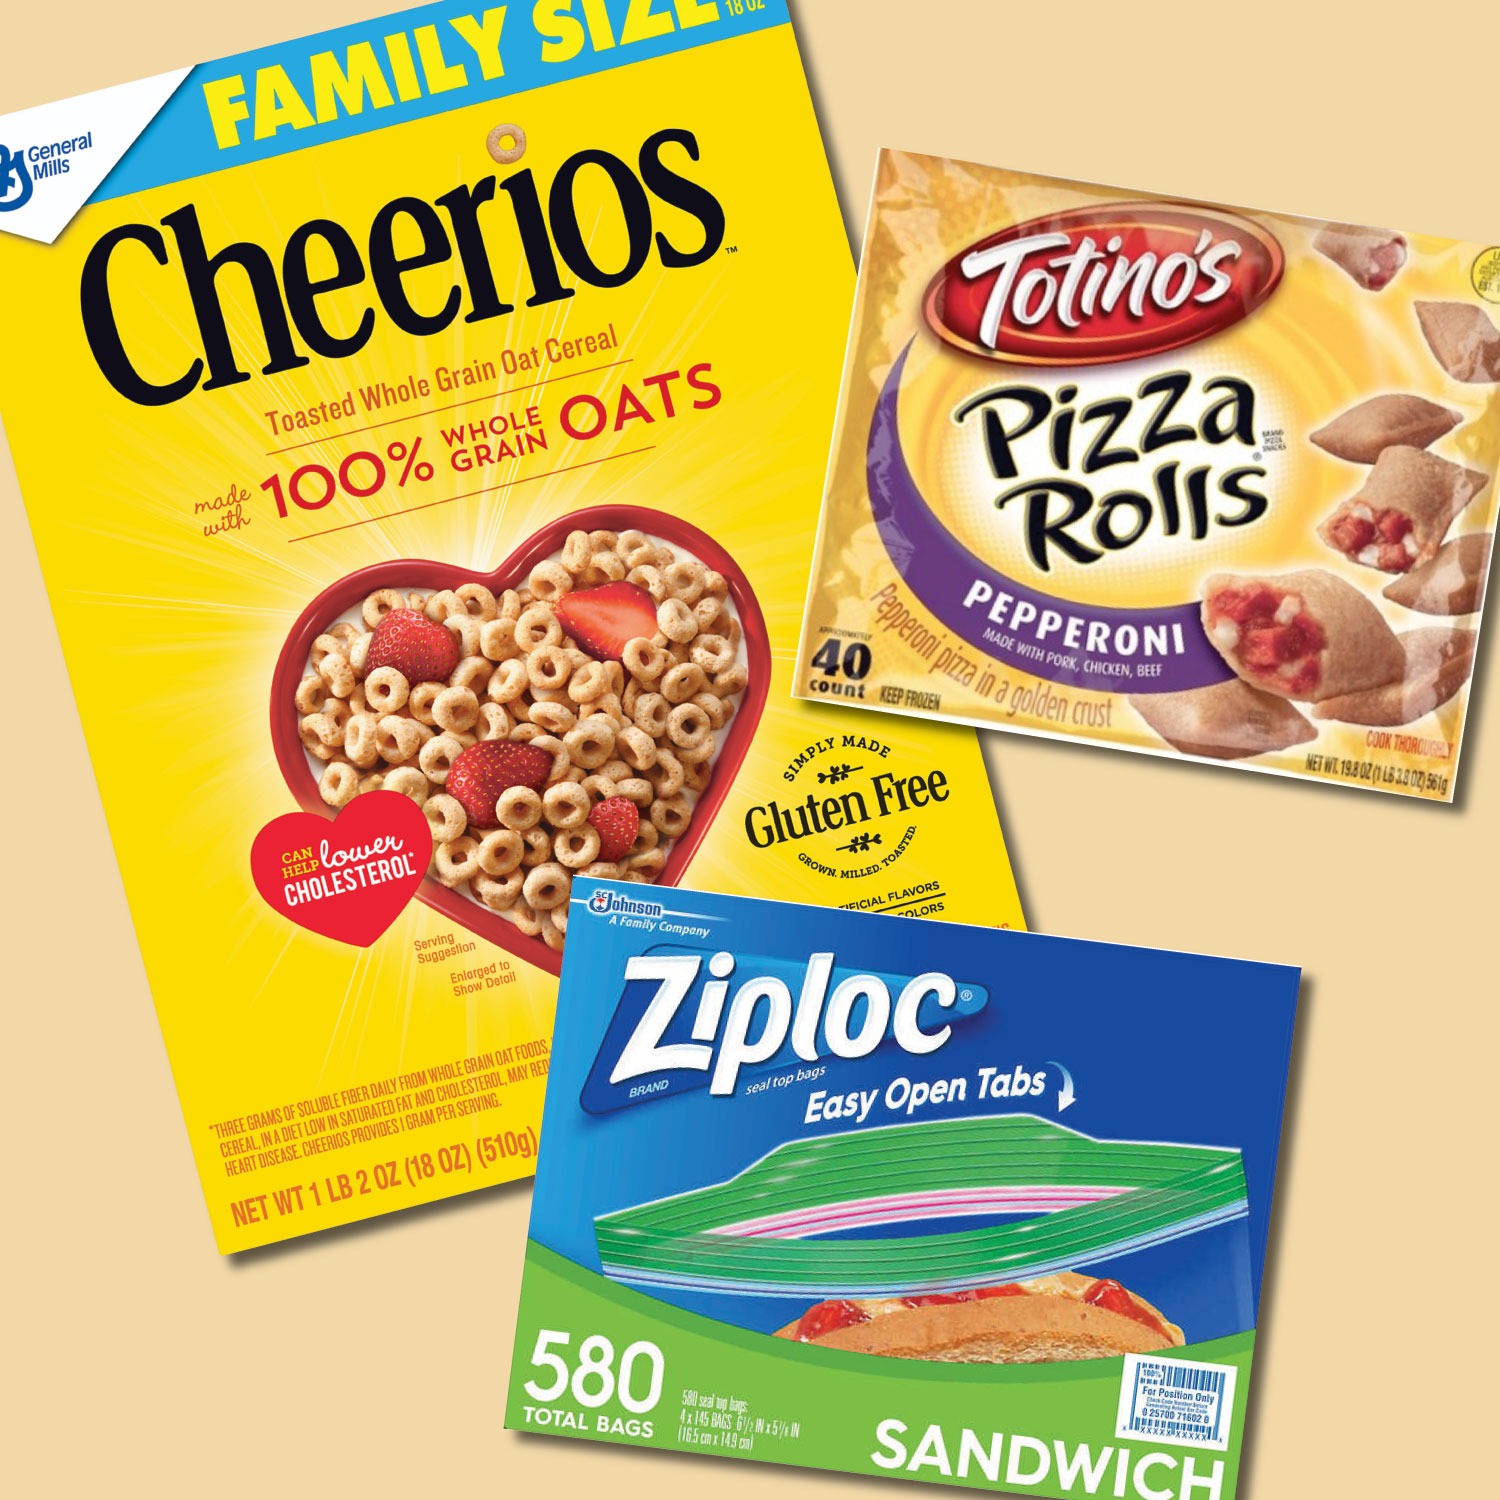 Box Tops Products?2020-01-27